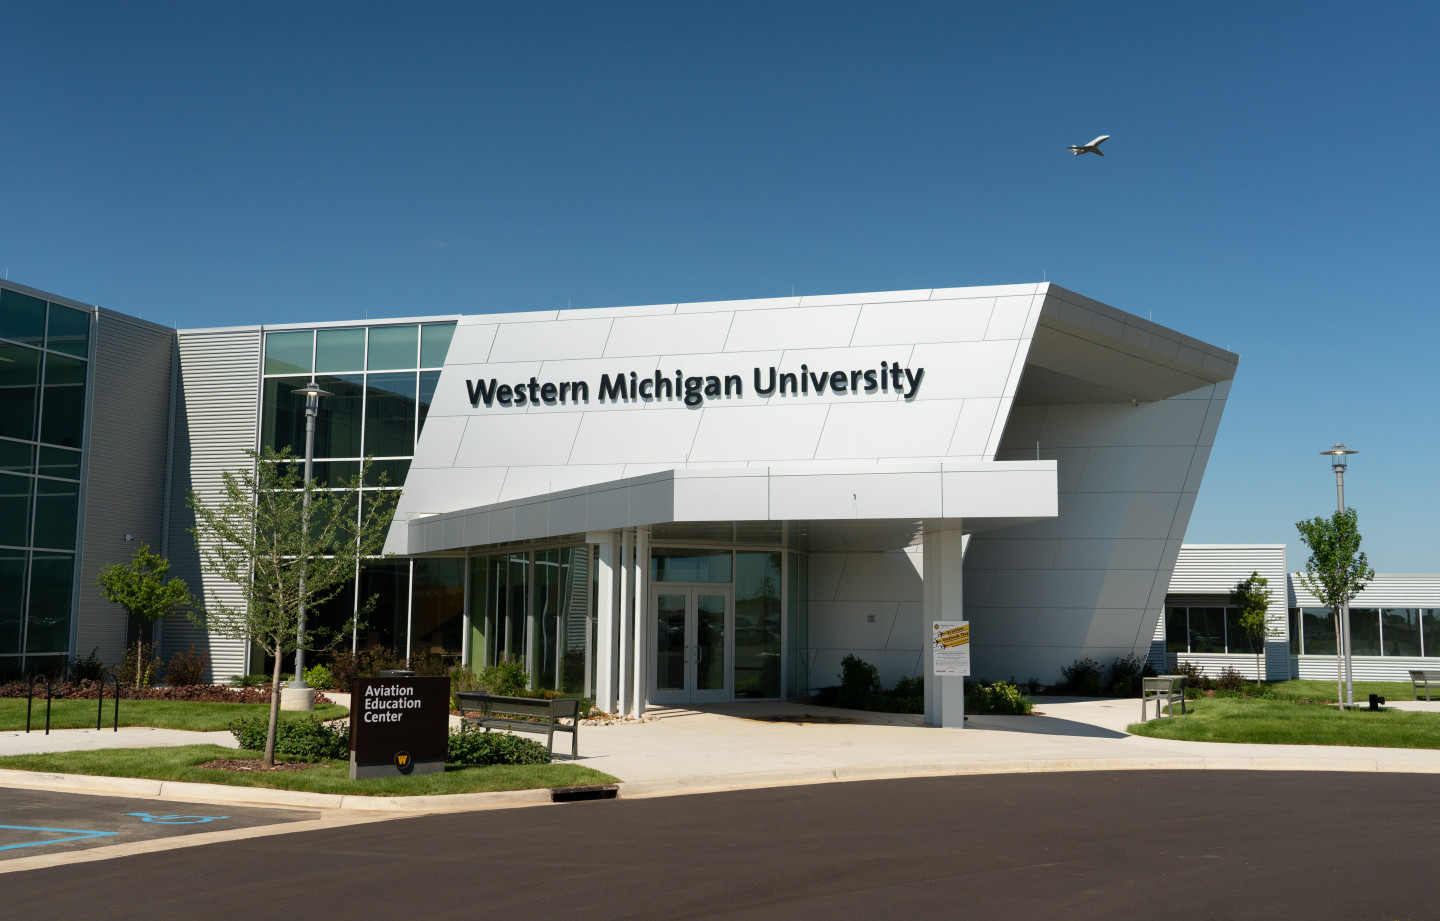 An airplane flies over the Aviation Education Center.